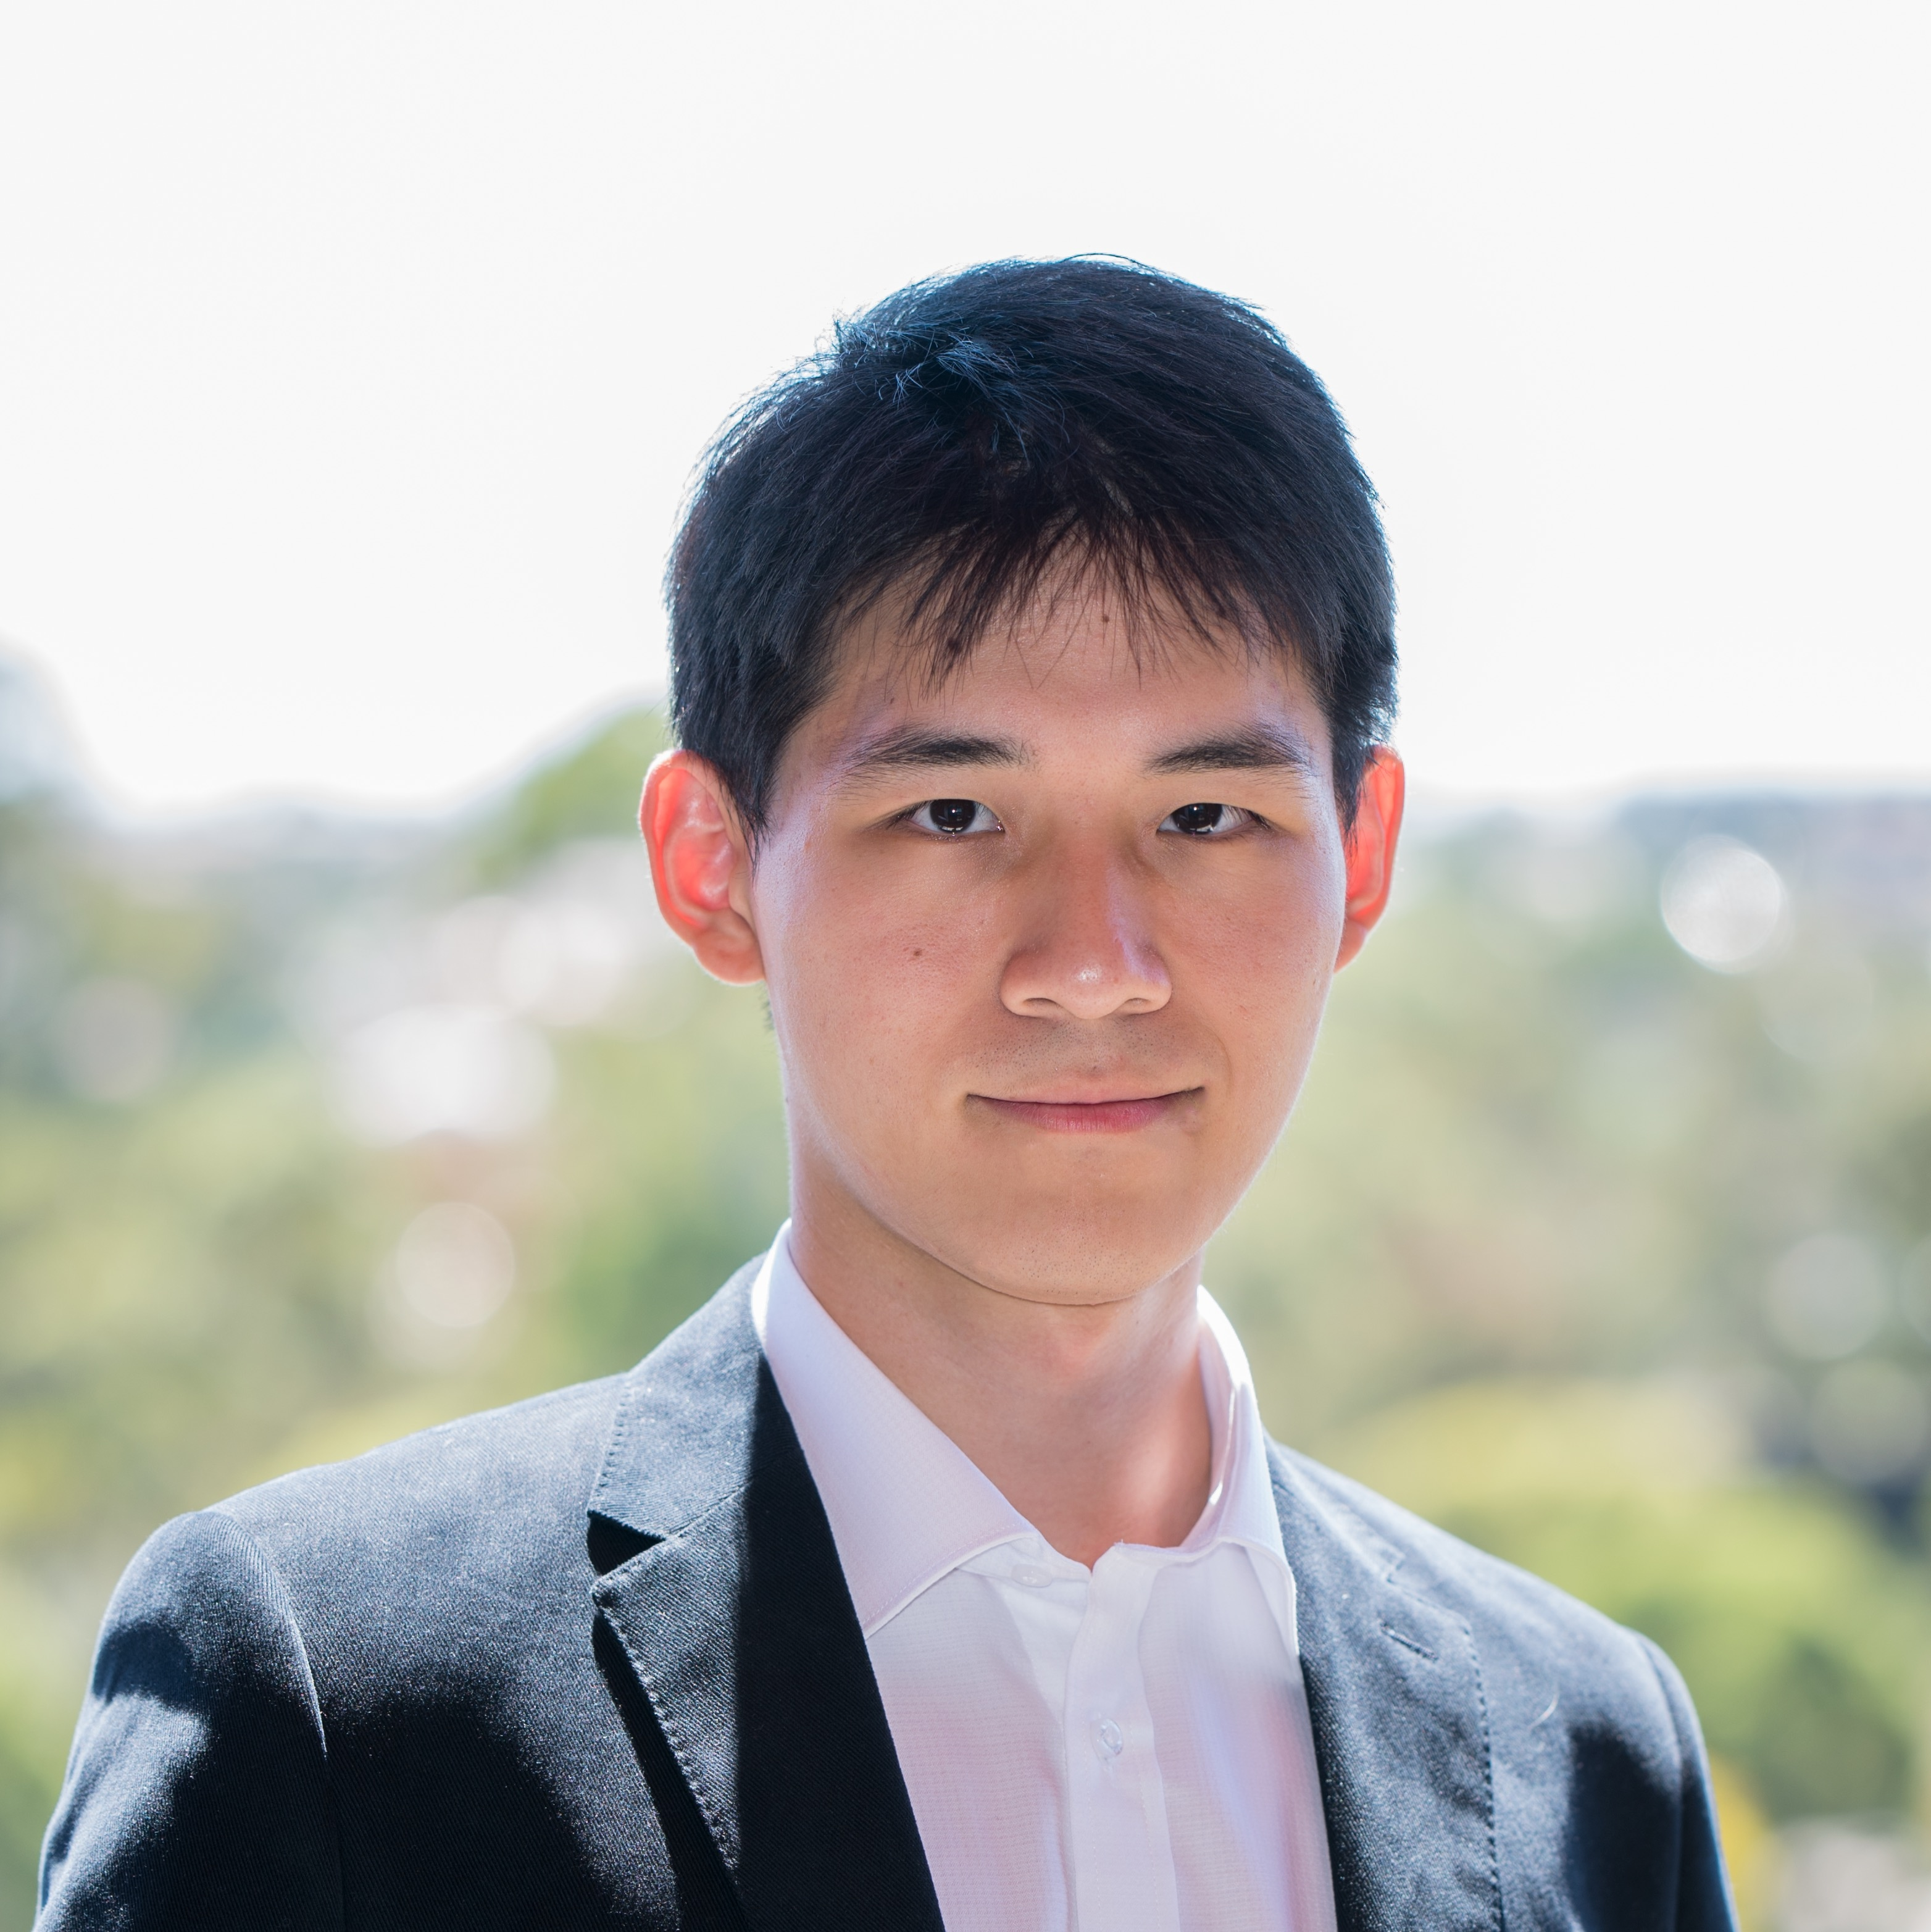 Professional headshot of Elevn Li